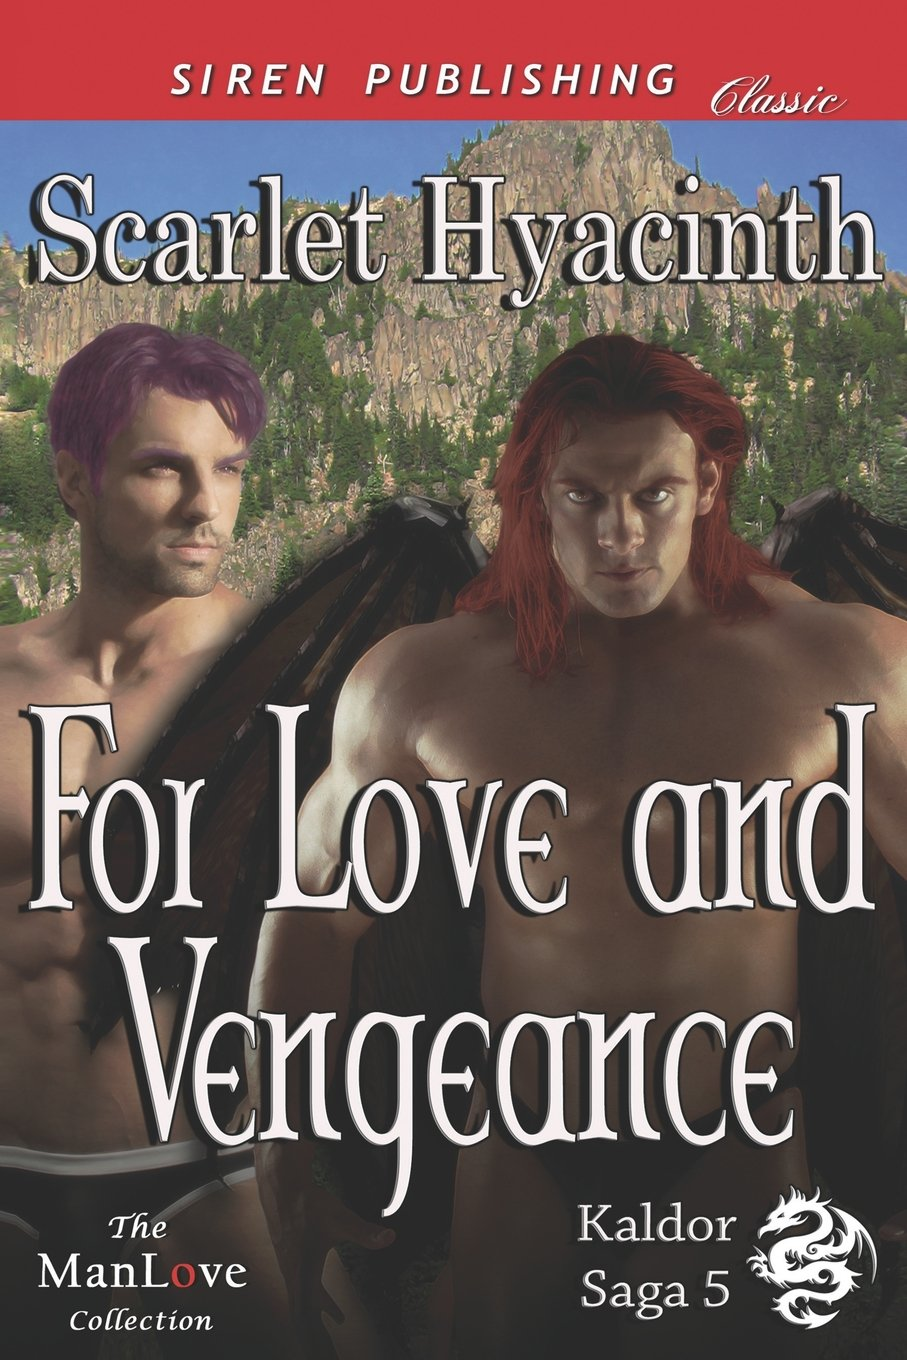 Read Online For Love and Vengeance [Kaldor Saga 5] (Siren Publishing Classic Manlove) (Kaldor Saga, Siren Publishing Classic Manlove) PDF